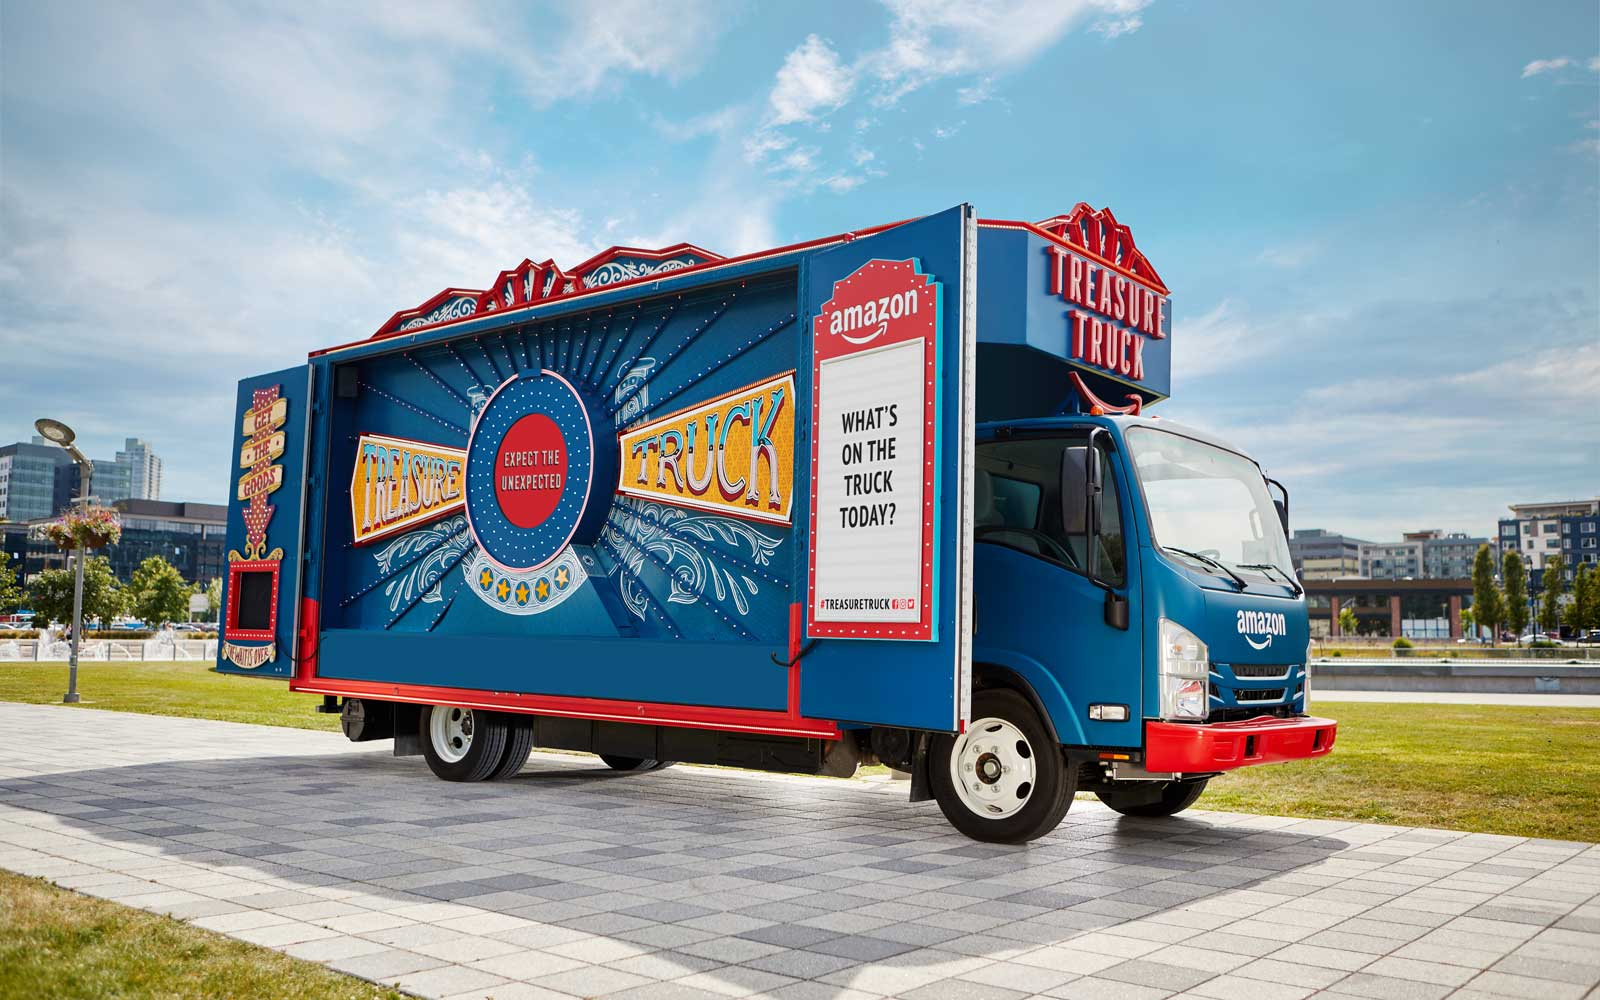 Amazon's 'Treasure Truck' May Be Coming to Your City Soon